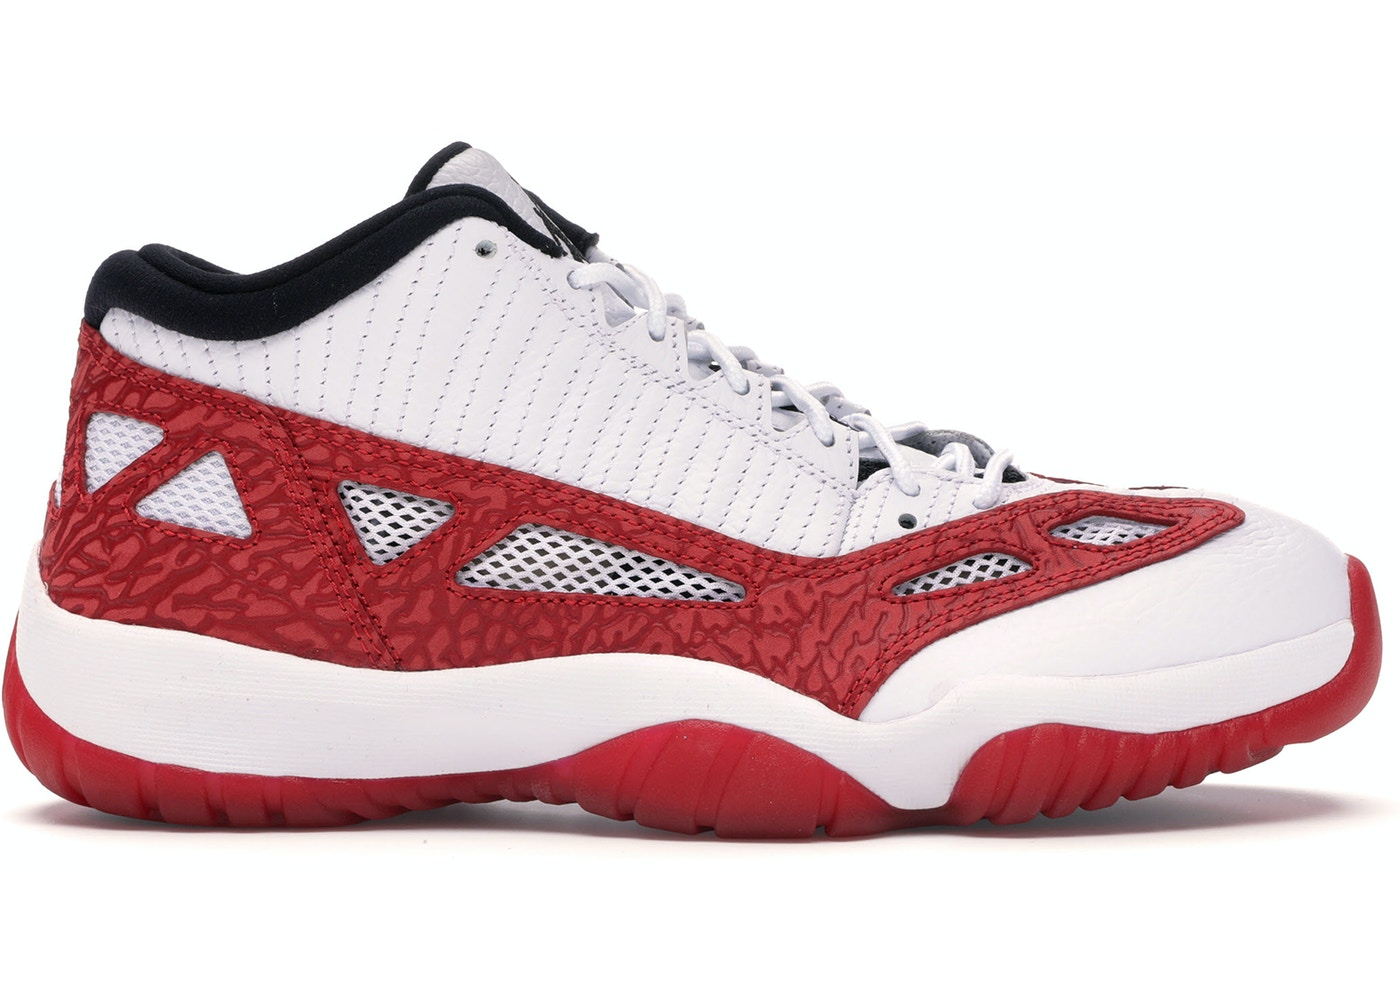 Jordan 11 Retro Low Ie White Gym Red 919712 101